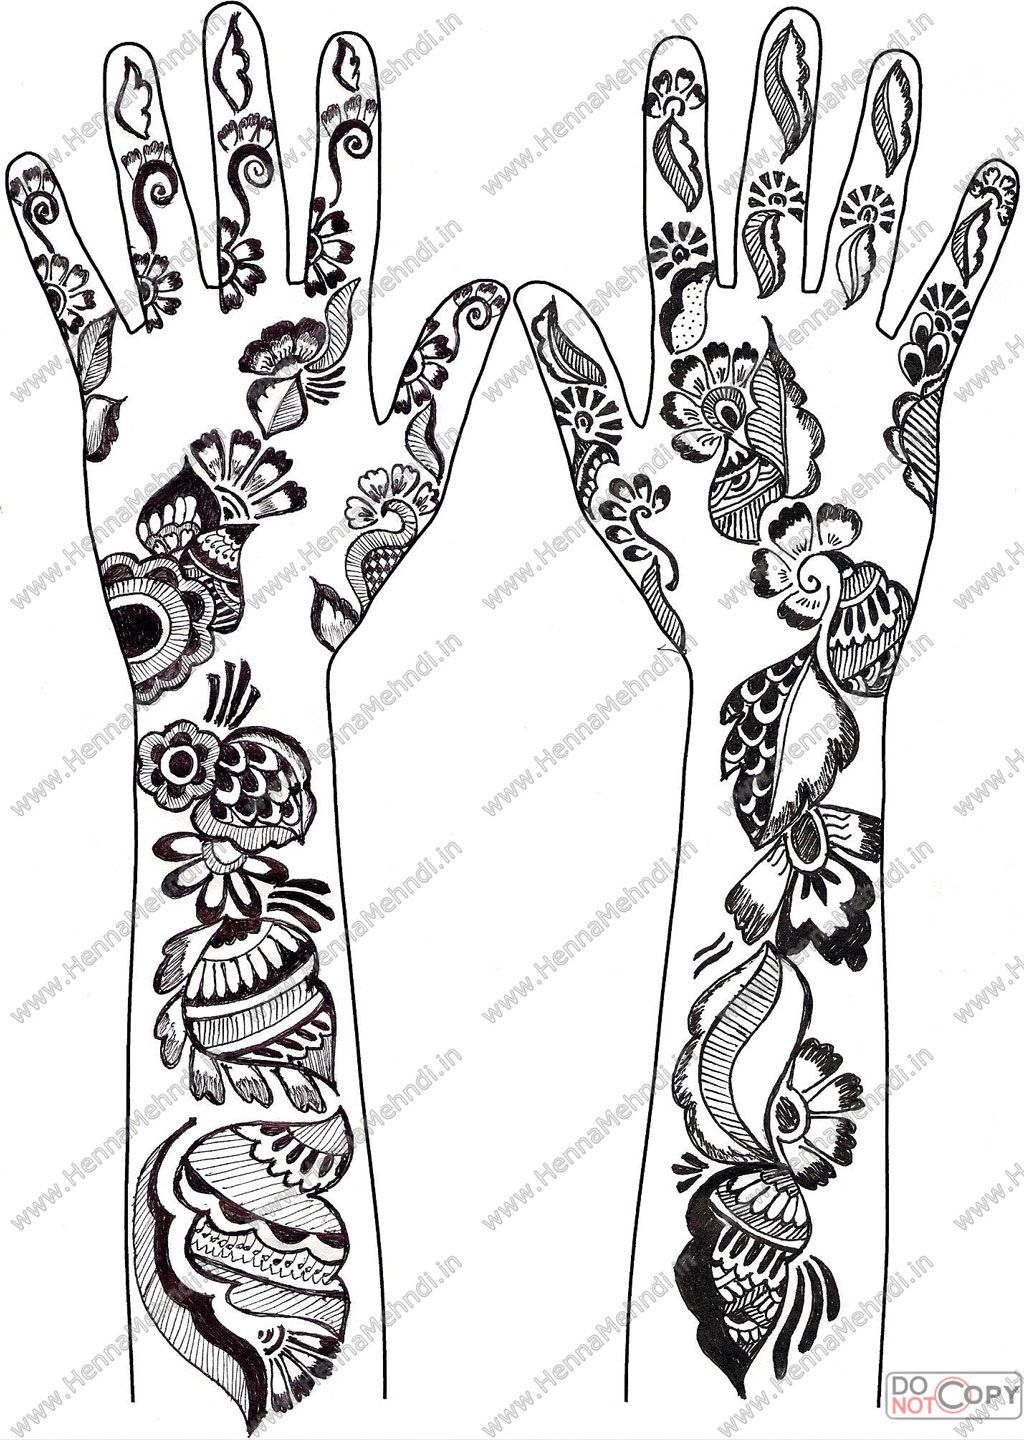 Coloring pages of mehndi hand pattern - Floral Henna Pattern For The Hands